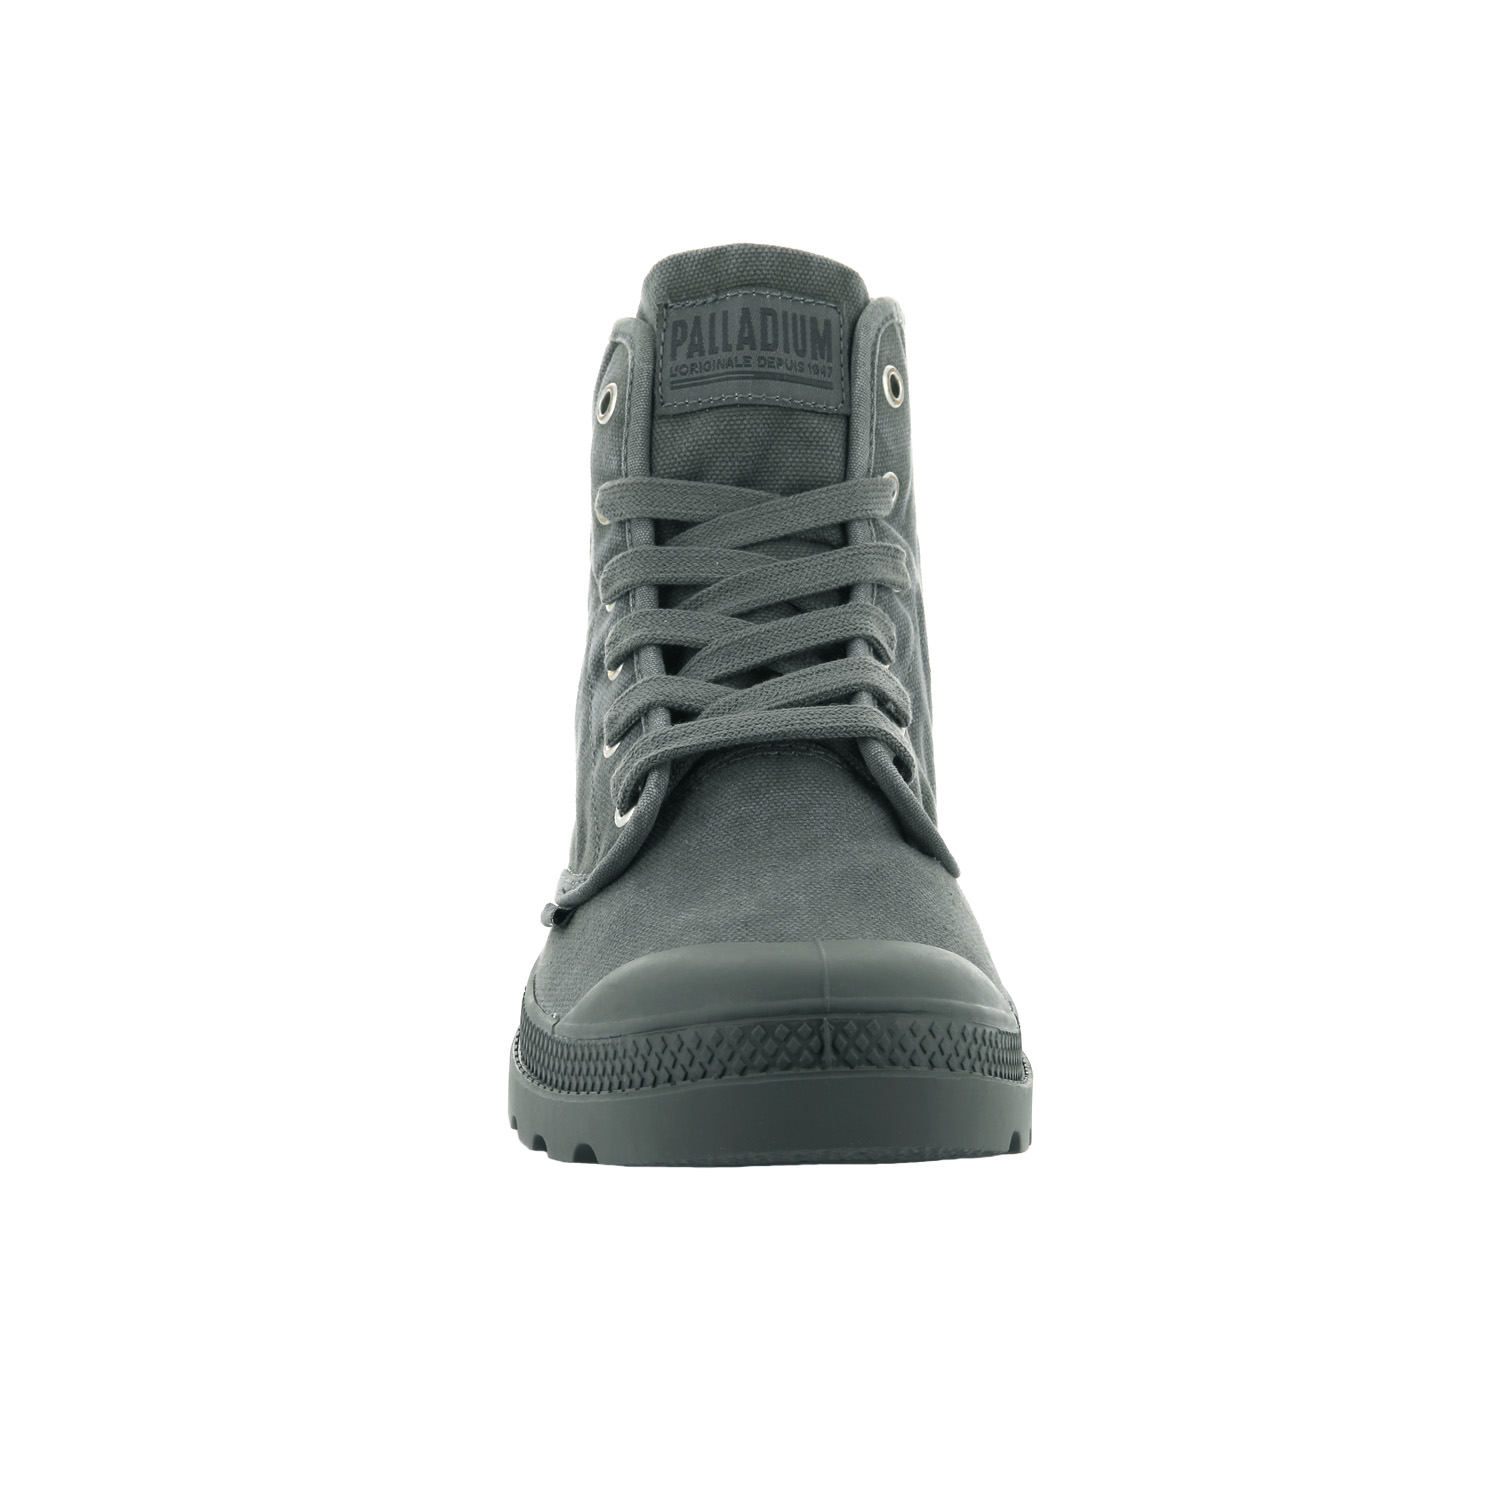 Palladium-Mens-Pampa-Hi-Canvas-Shoes-Casual-Walking-High-Top-Lace-Up-Ankle-Boots thumbnail 42